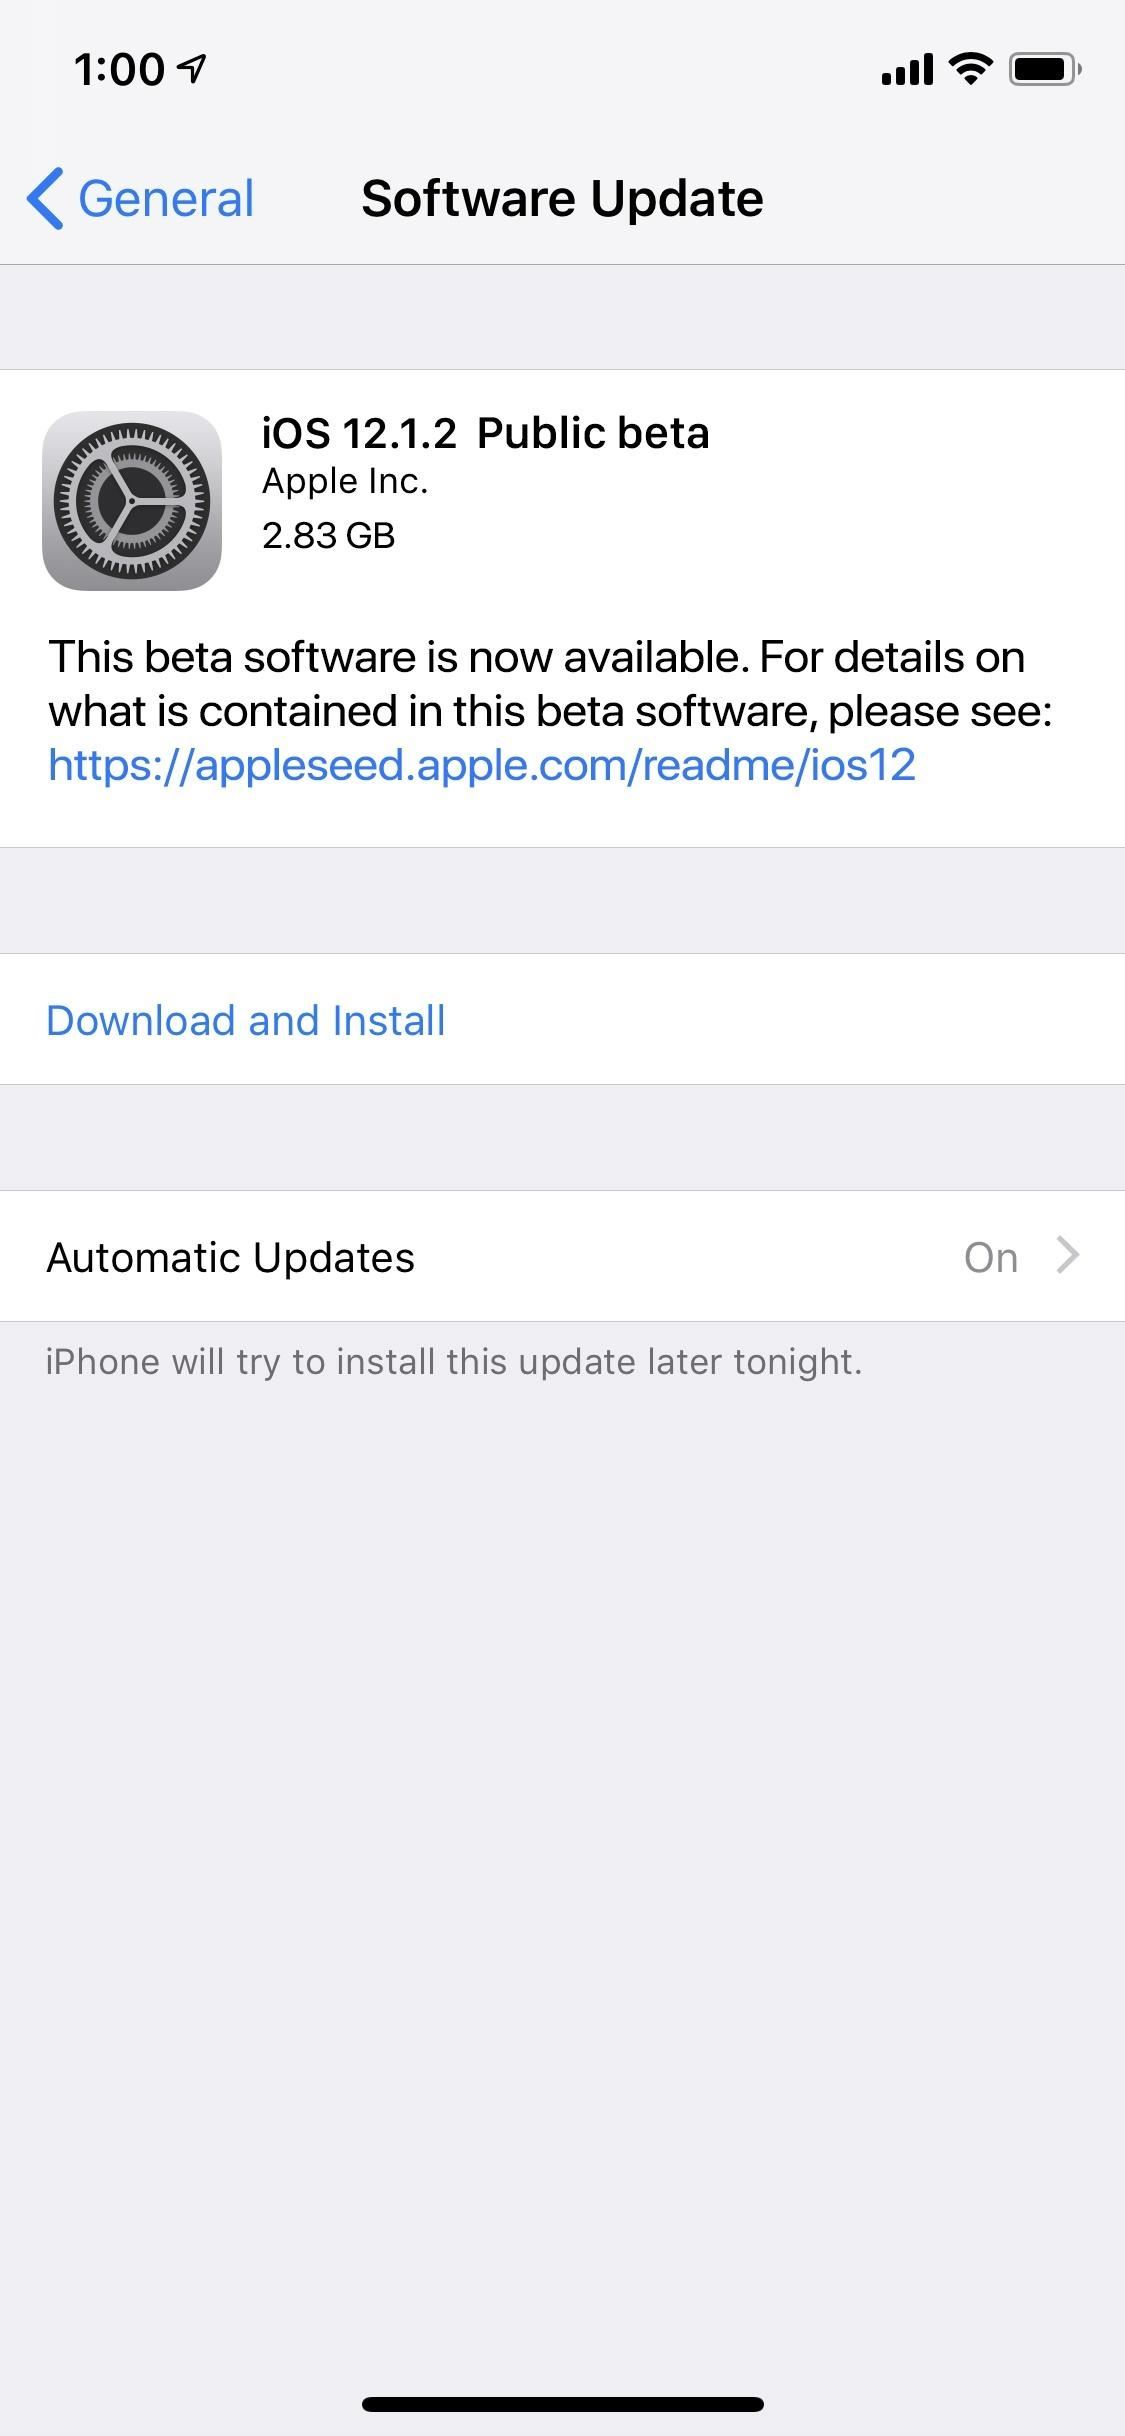 Apple Just Released iOS 12.1.2 Public Beta 1 for iPhone